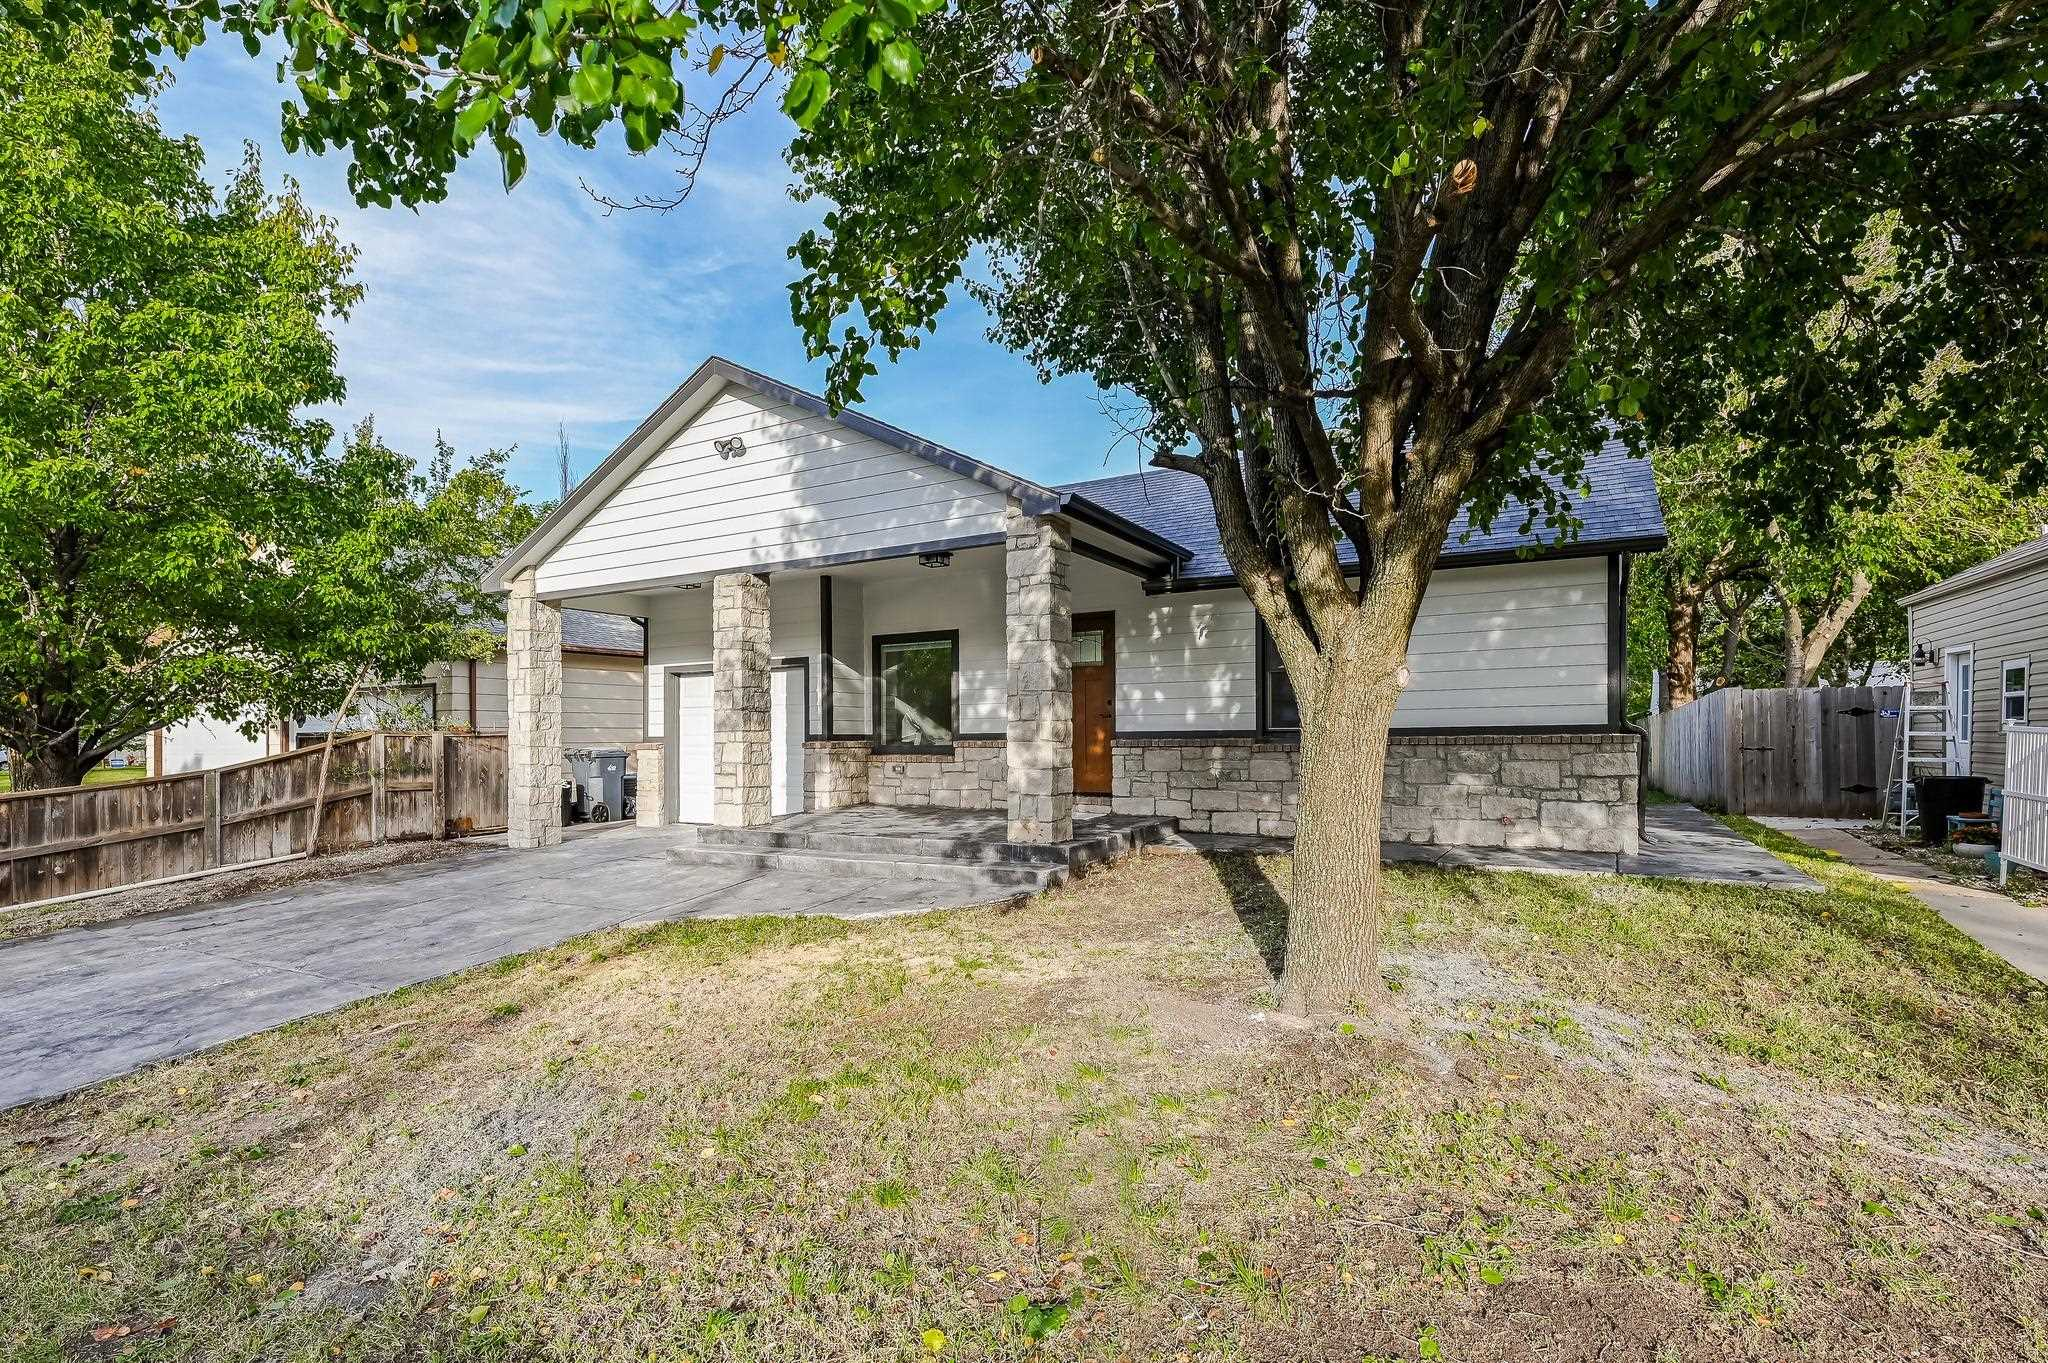 Wonderful property in the Riverside area. Total Remodel and all New Wiring, plumbing, flooring, roof